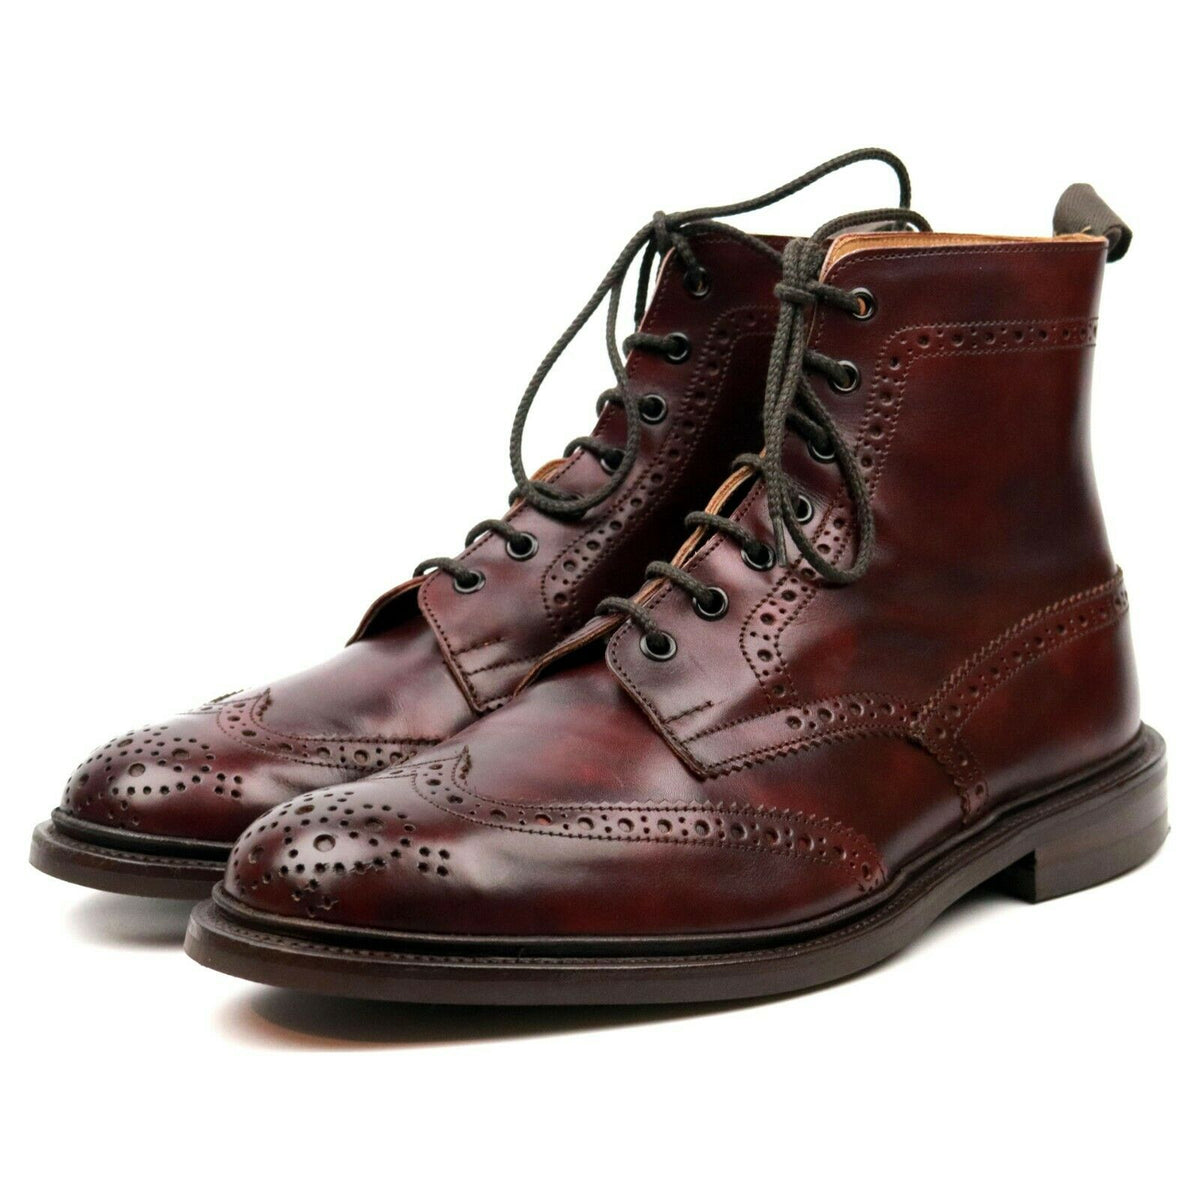 Tricker's 'Stow' Burgundy Museum Leather Brogue Boots UK 10.5